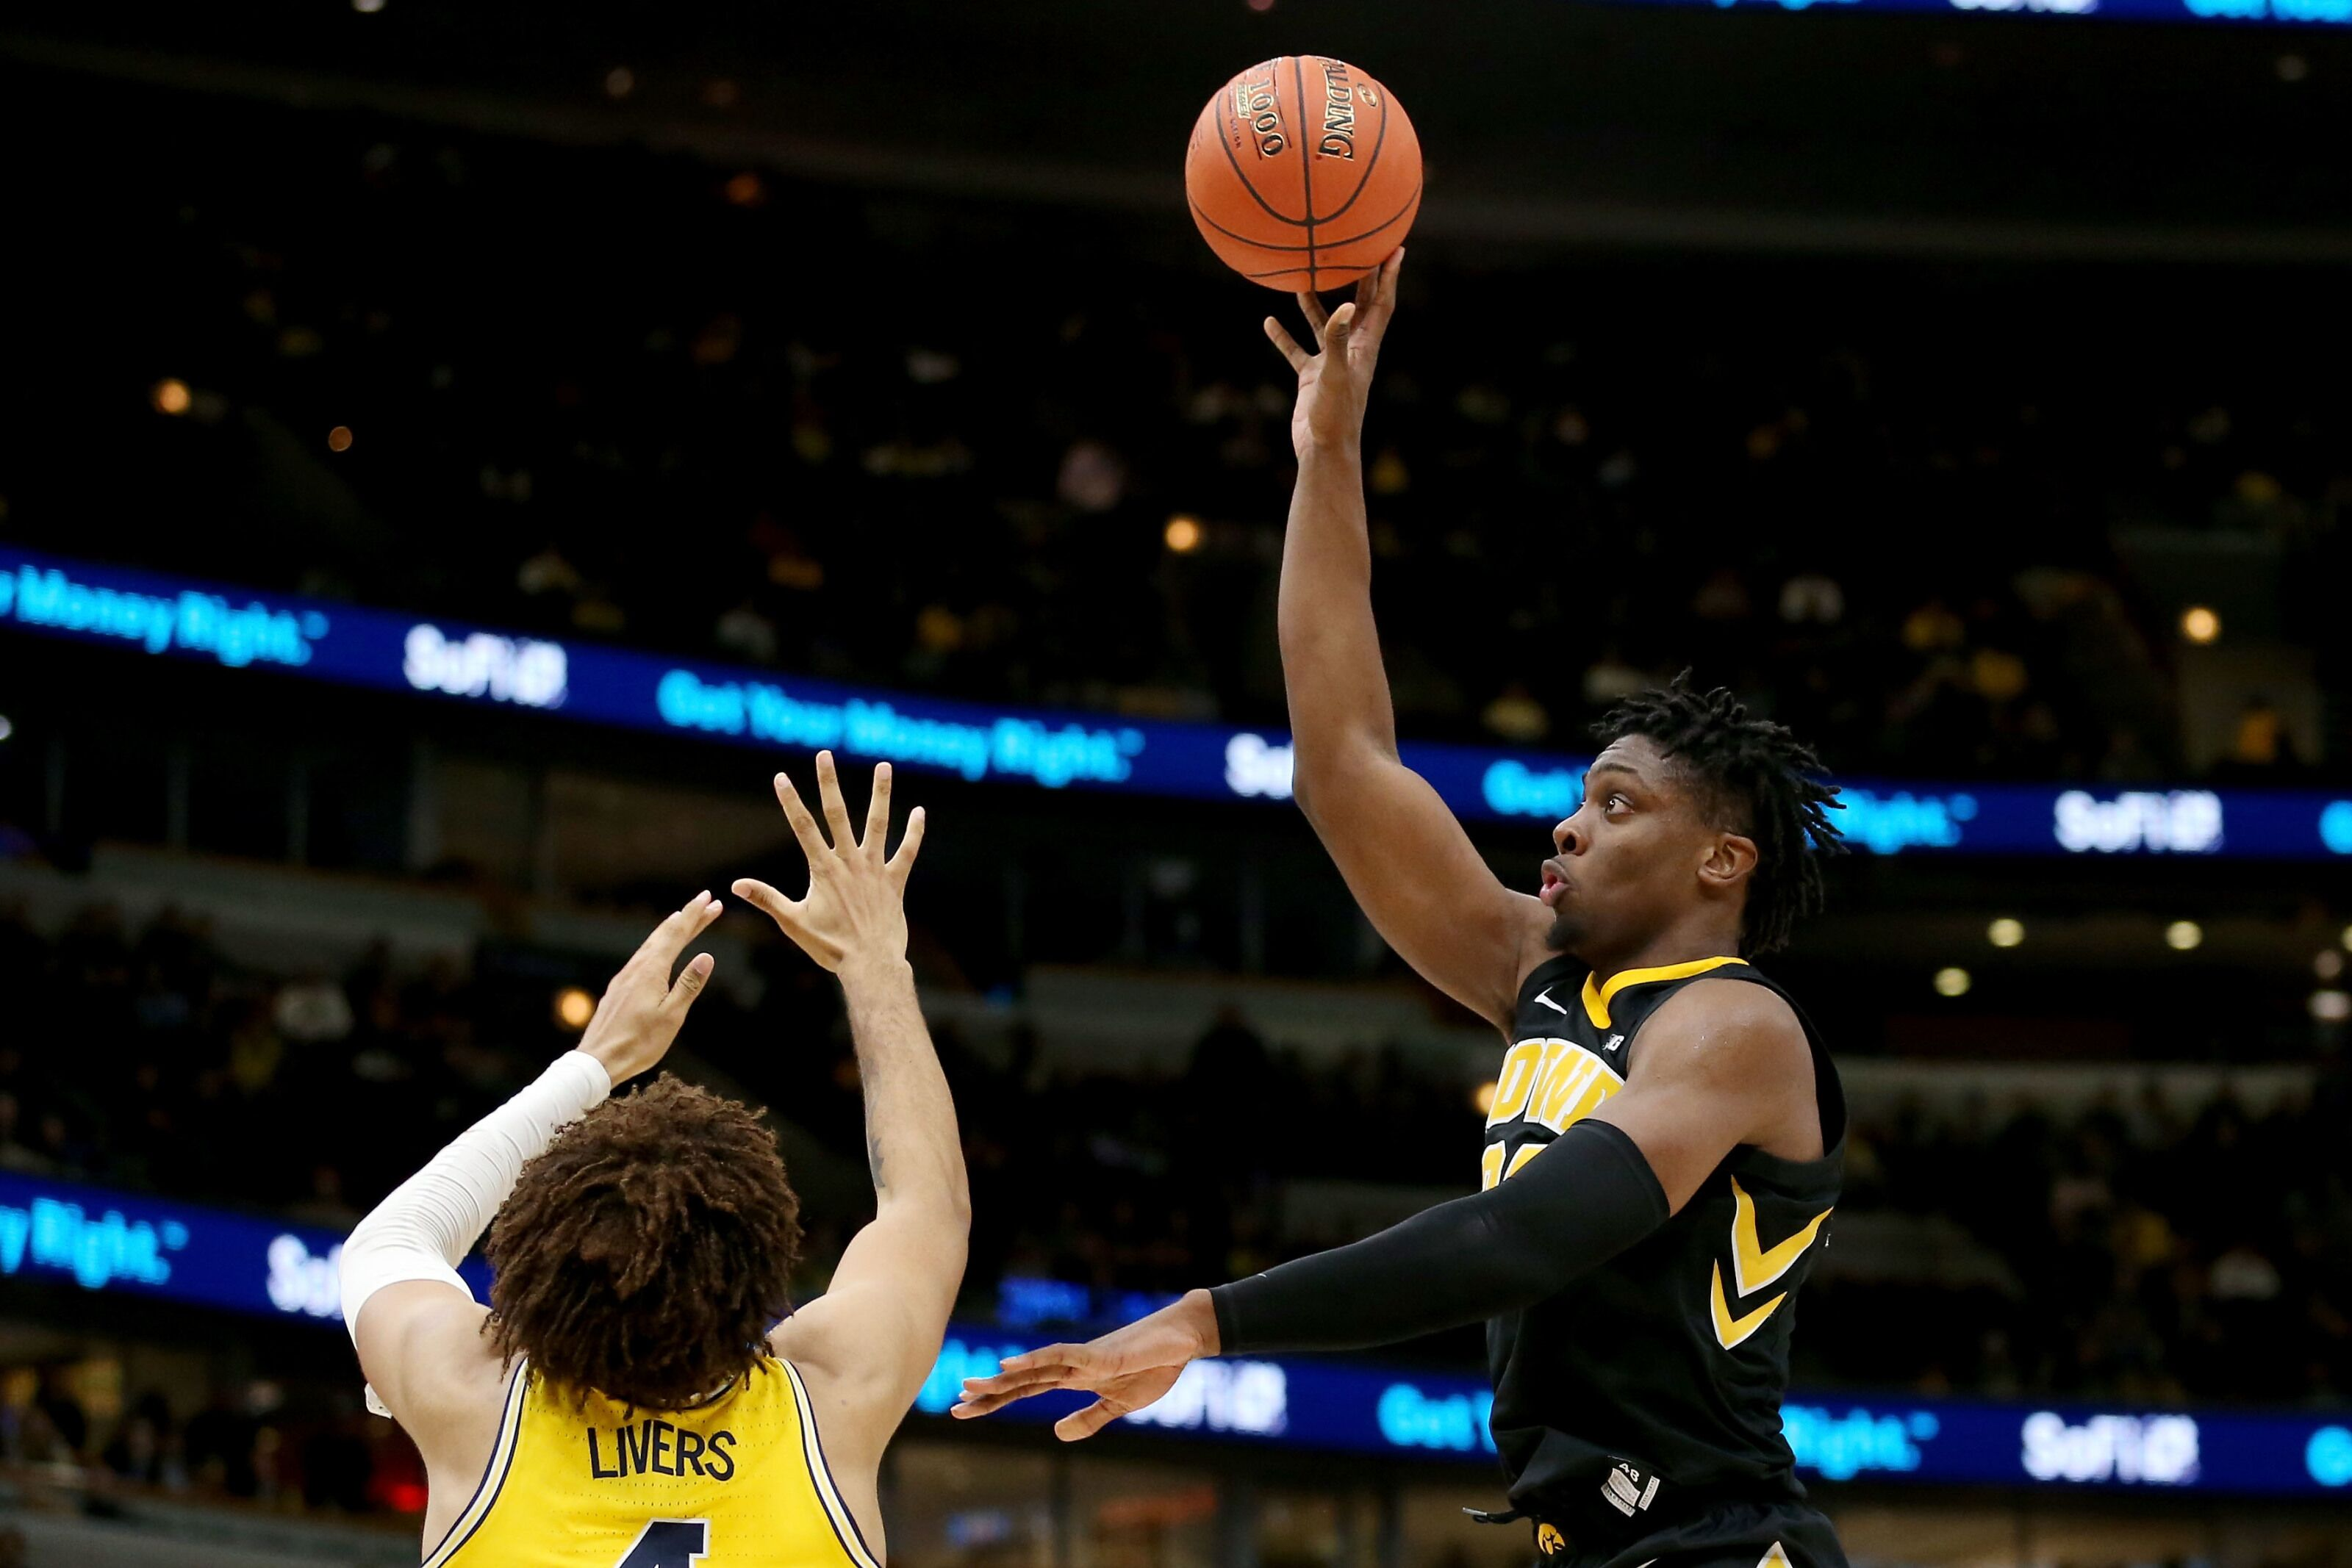 Iowa Basketball: How The Big Ten Fared In March Madness